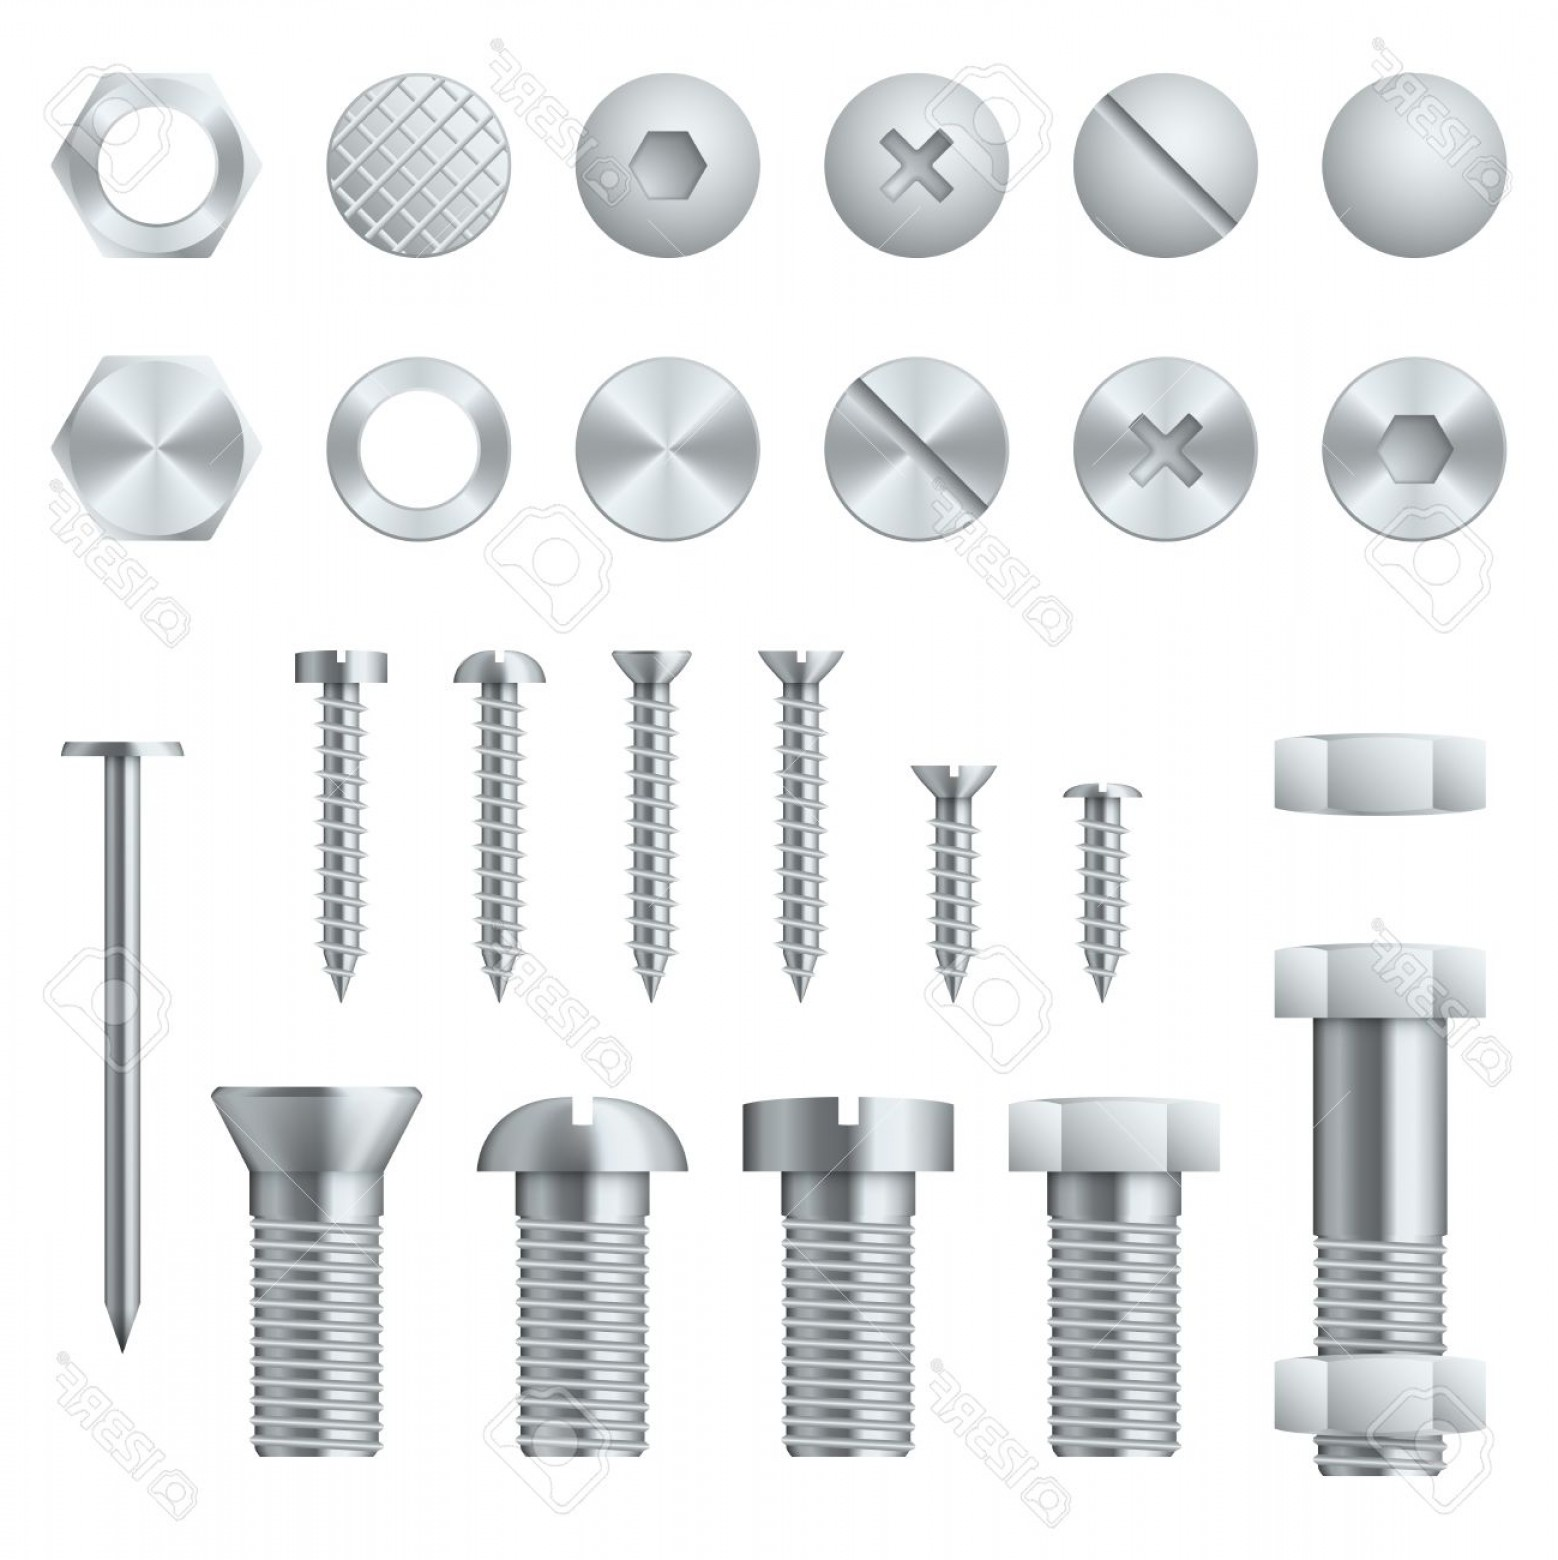 Fastener Vector: Photostock Vector Screws Bolts Nuts Nails And Rivets For Fastening And Fixing Vector Illustration Design Elements